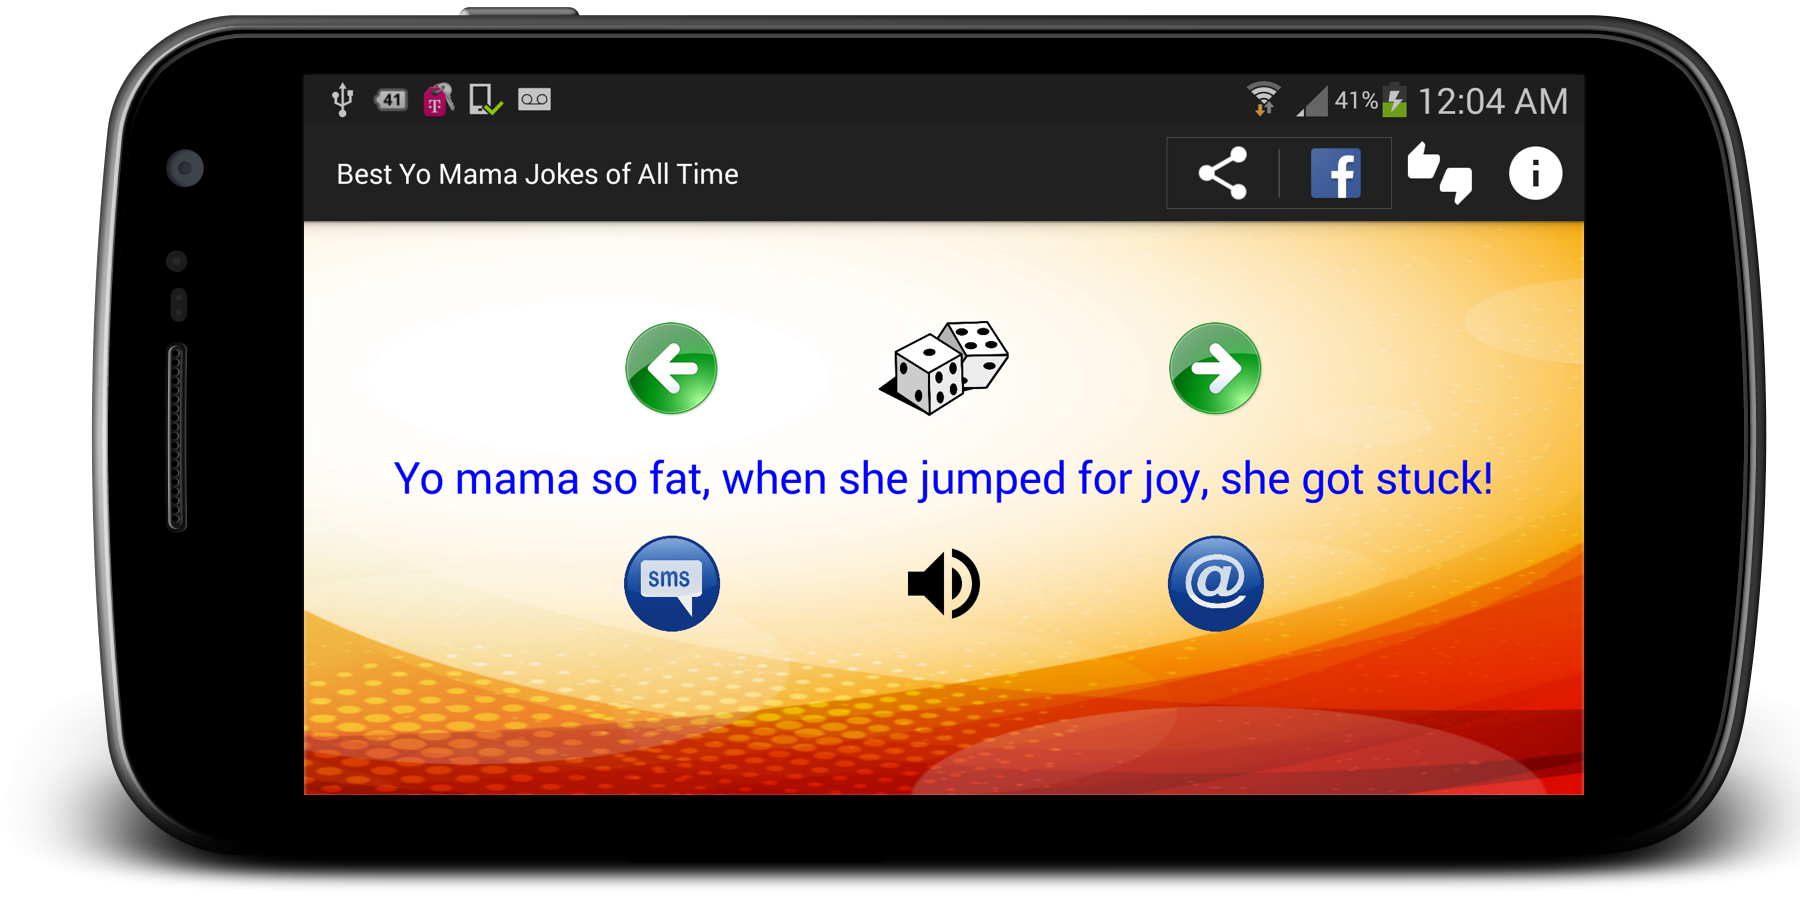 Best Yo Mama Jokes of All Time- screenshot